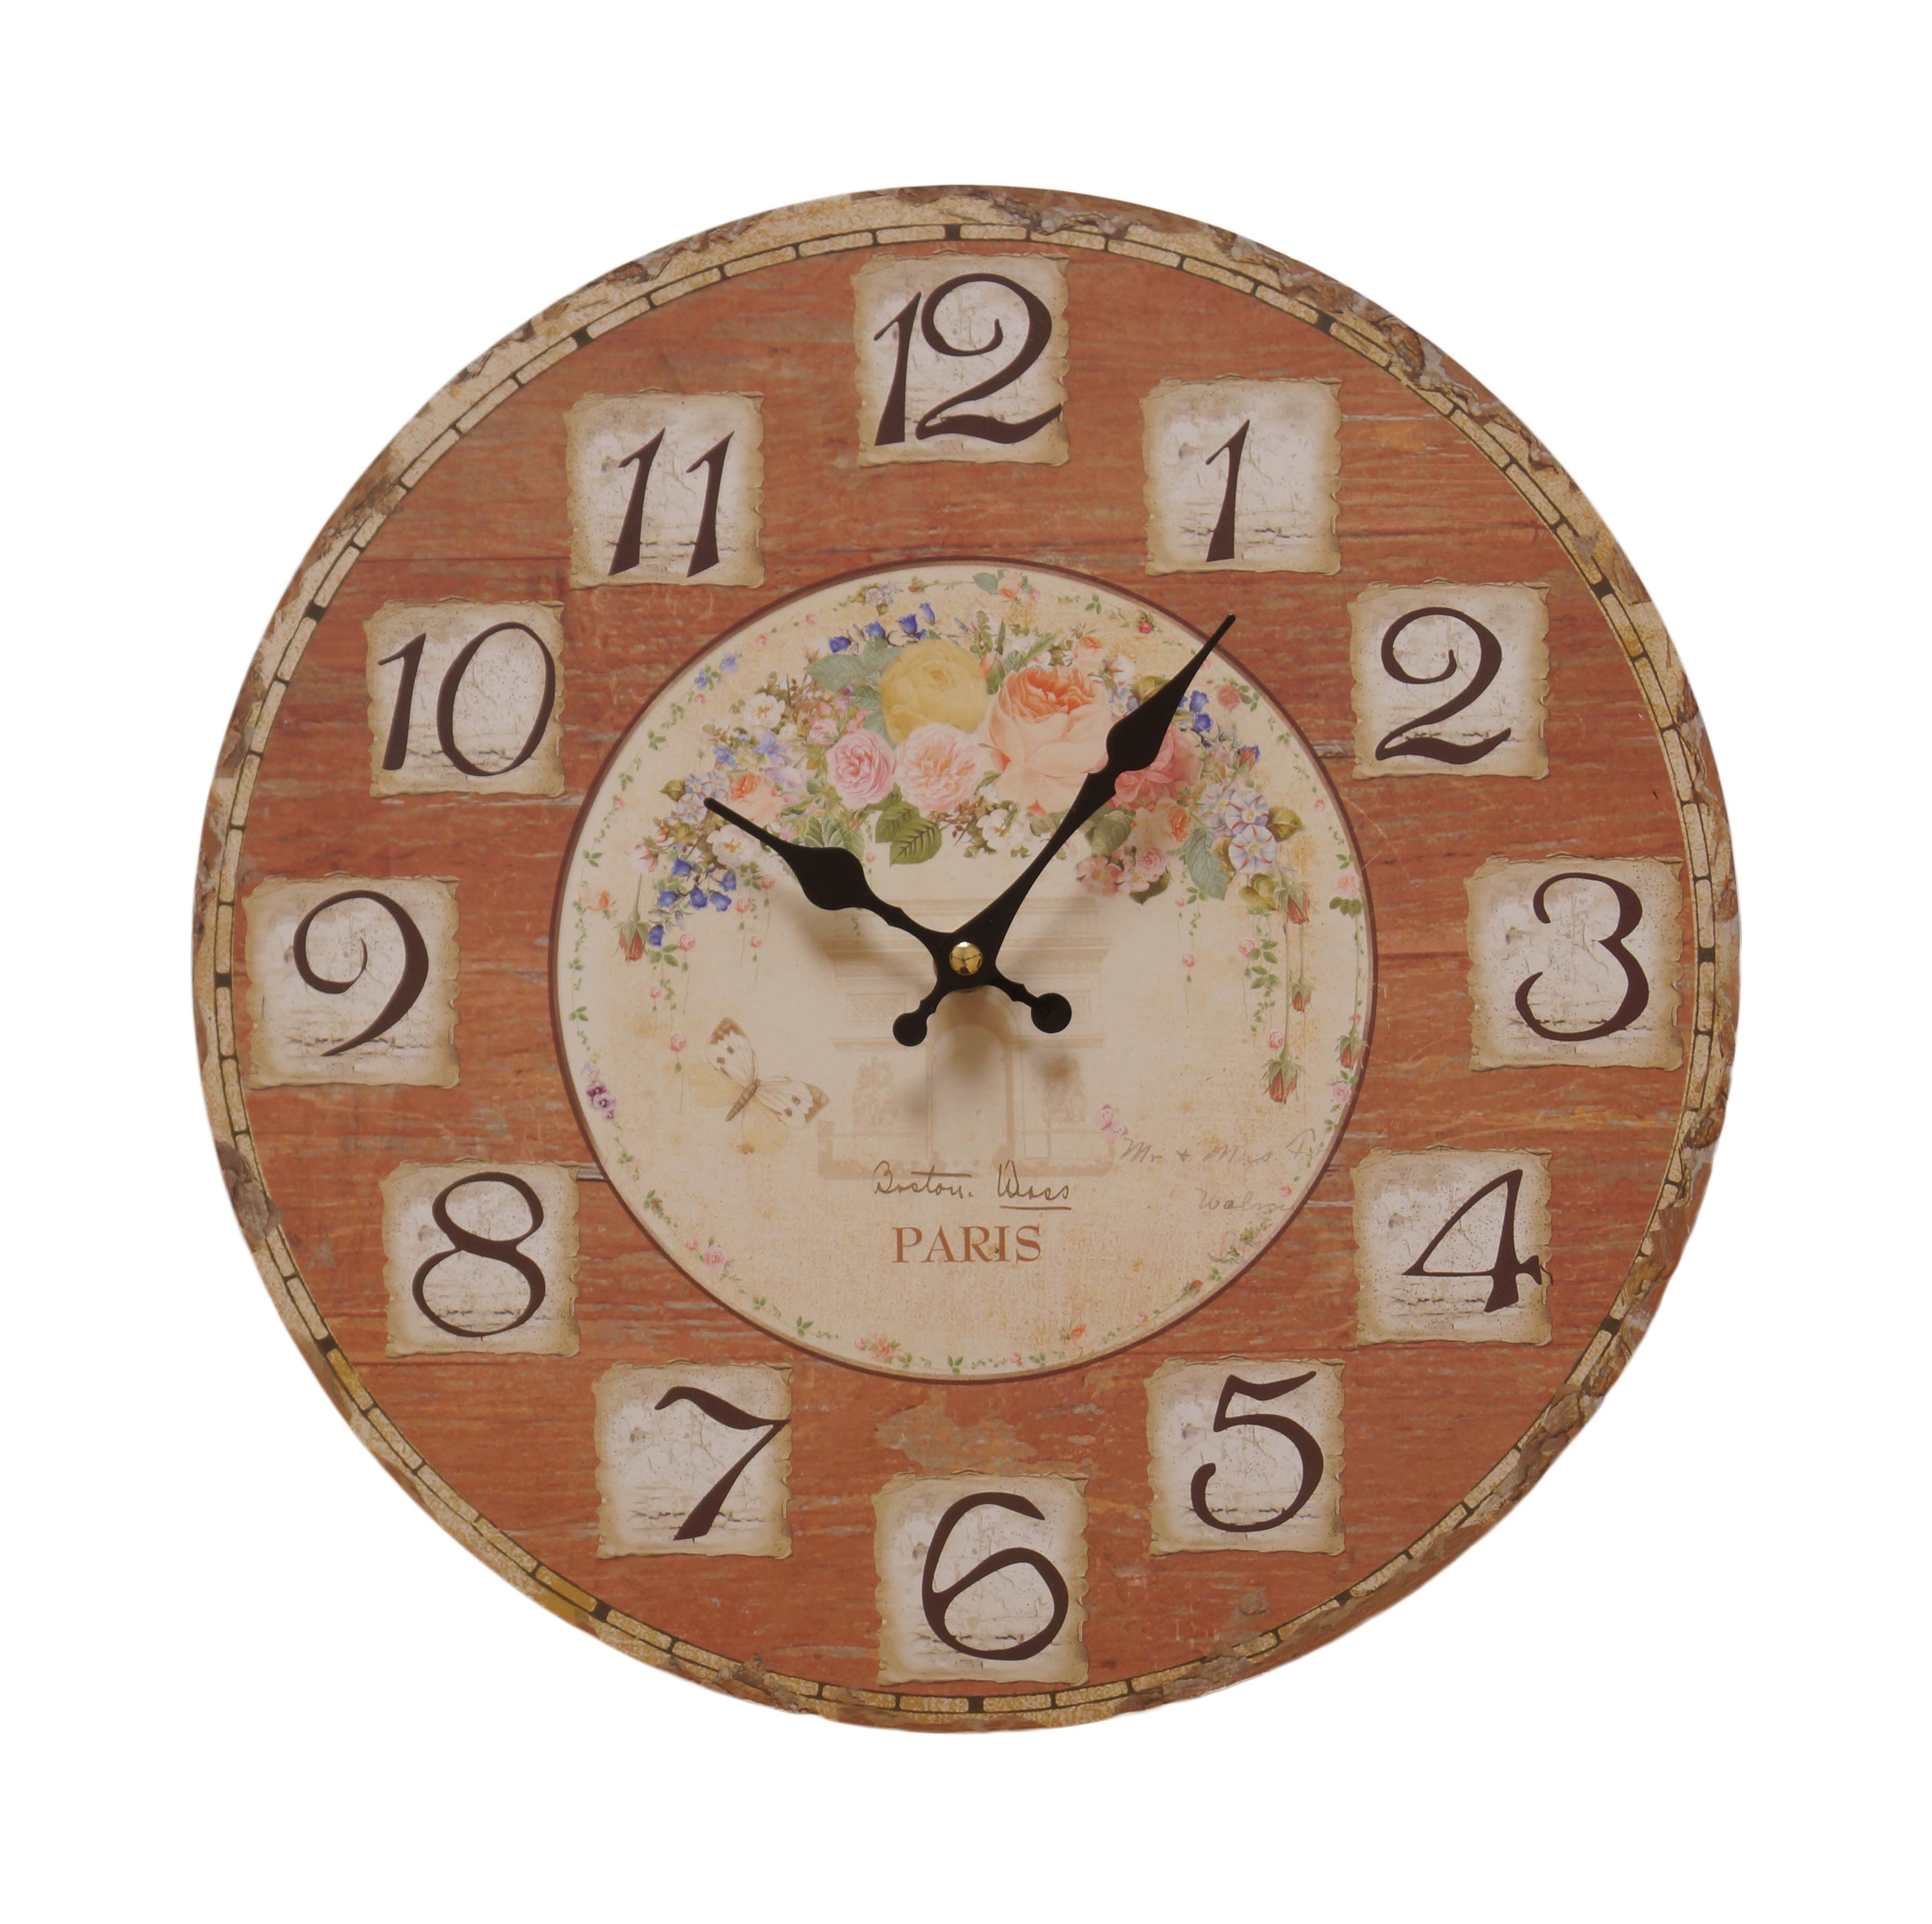 vintage retro holz wanduhr uhr 34cm shabby chic. Black Bedroom Furniture Sets. Home Design Ideas